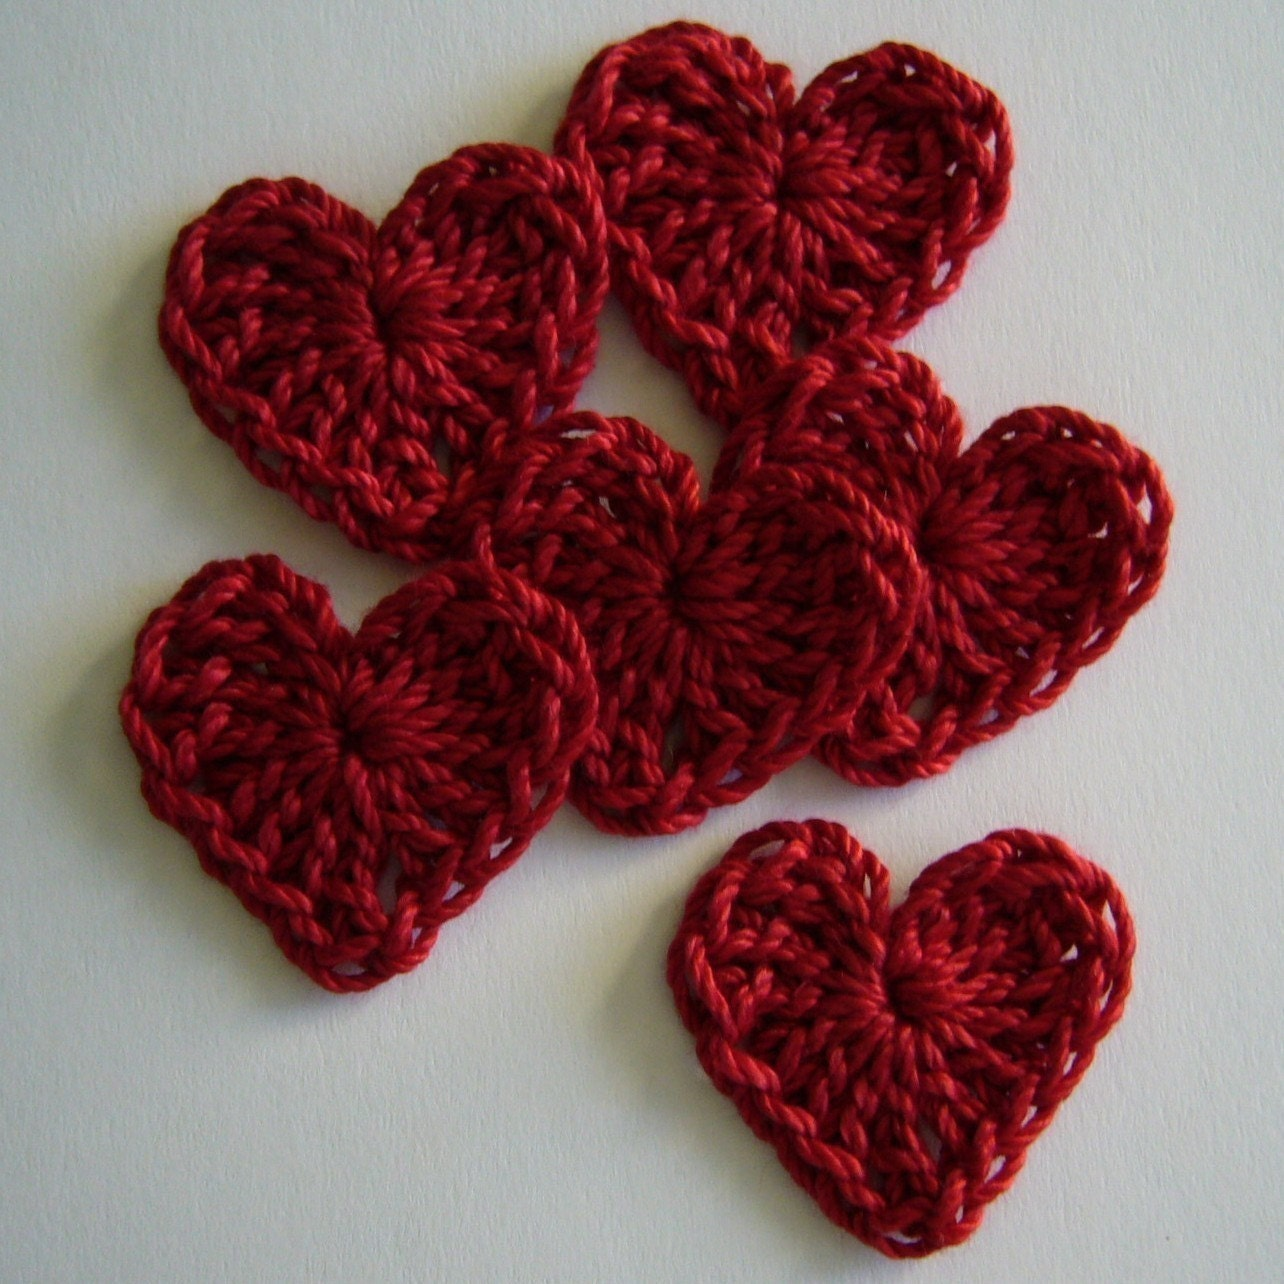 Crocheted Hearts - Red - Cotton